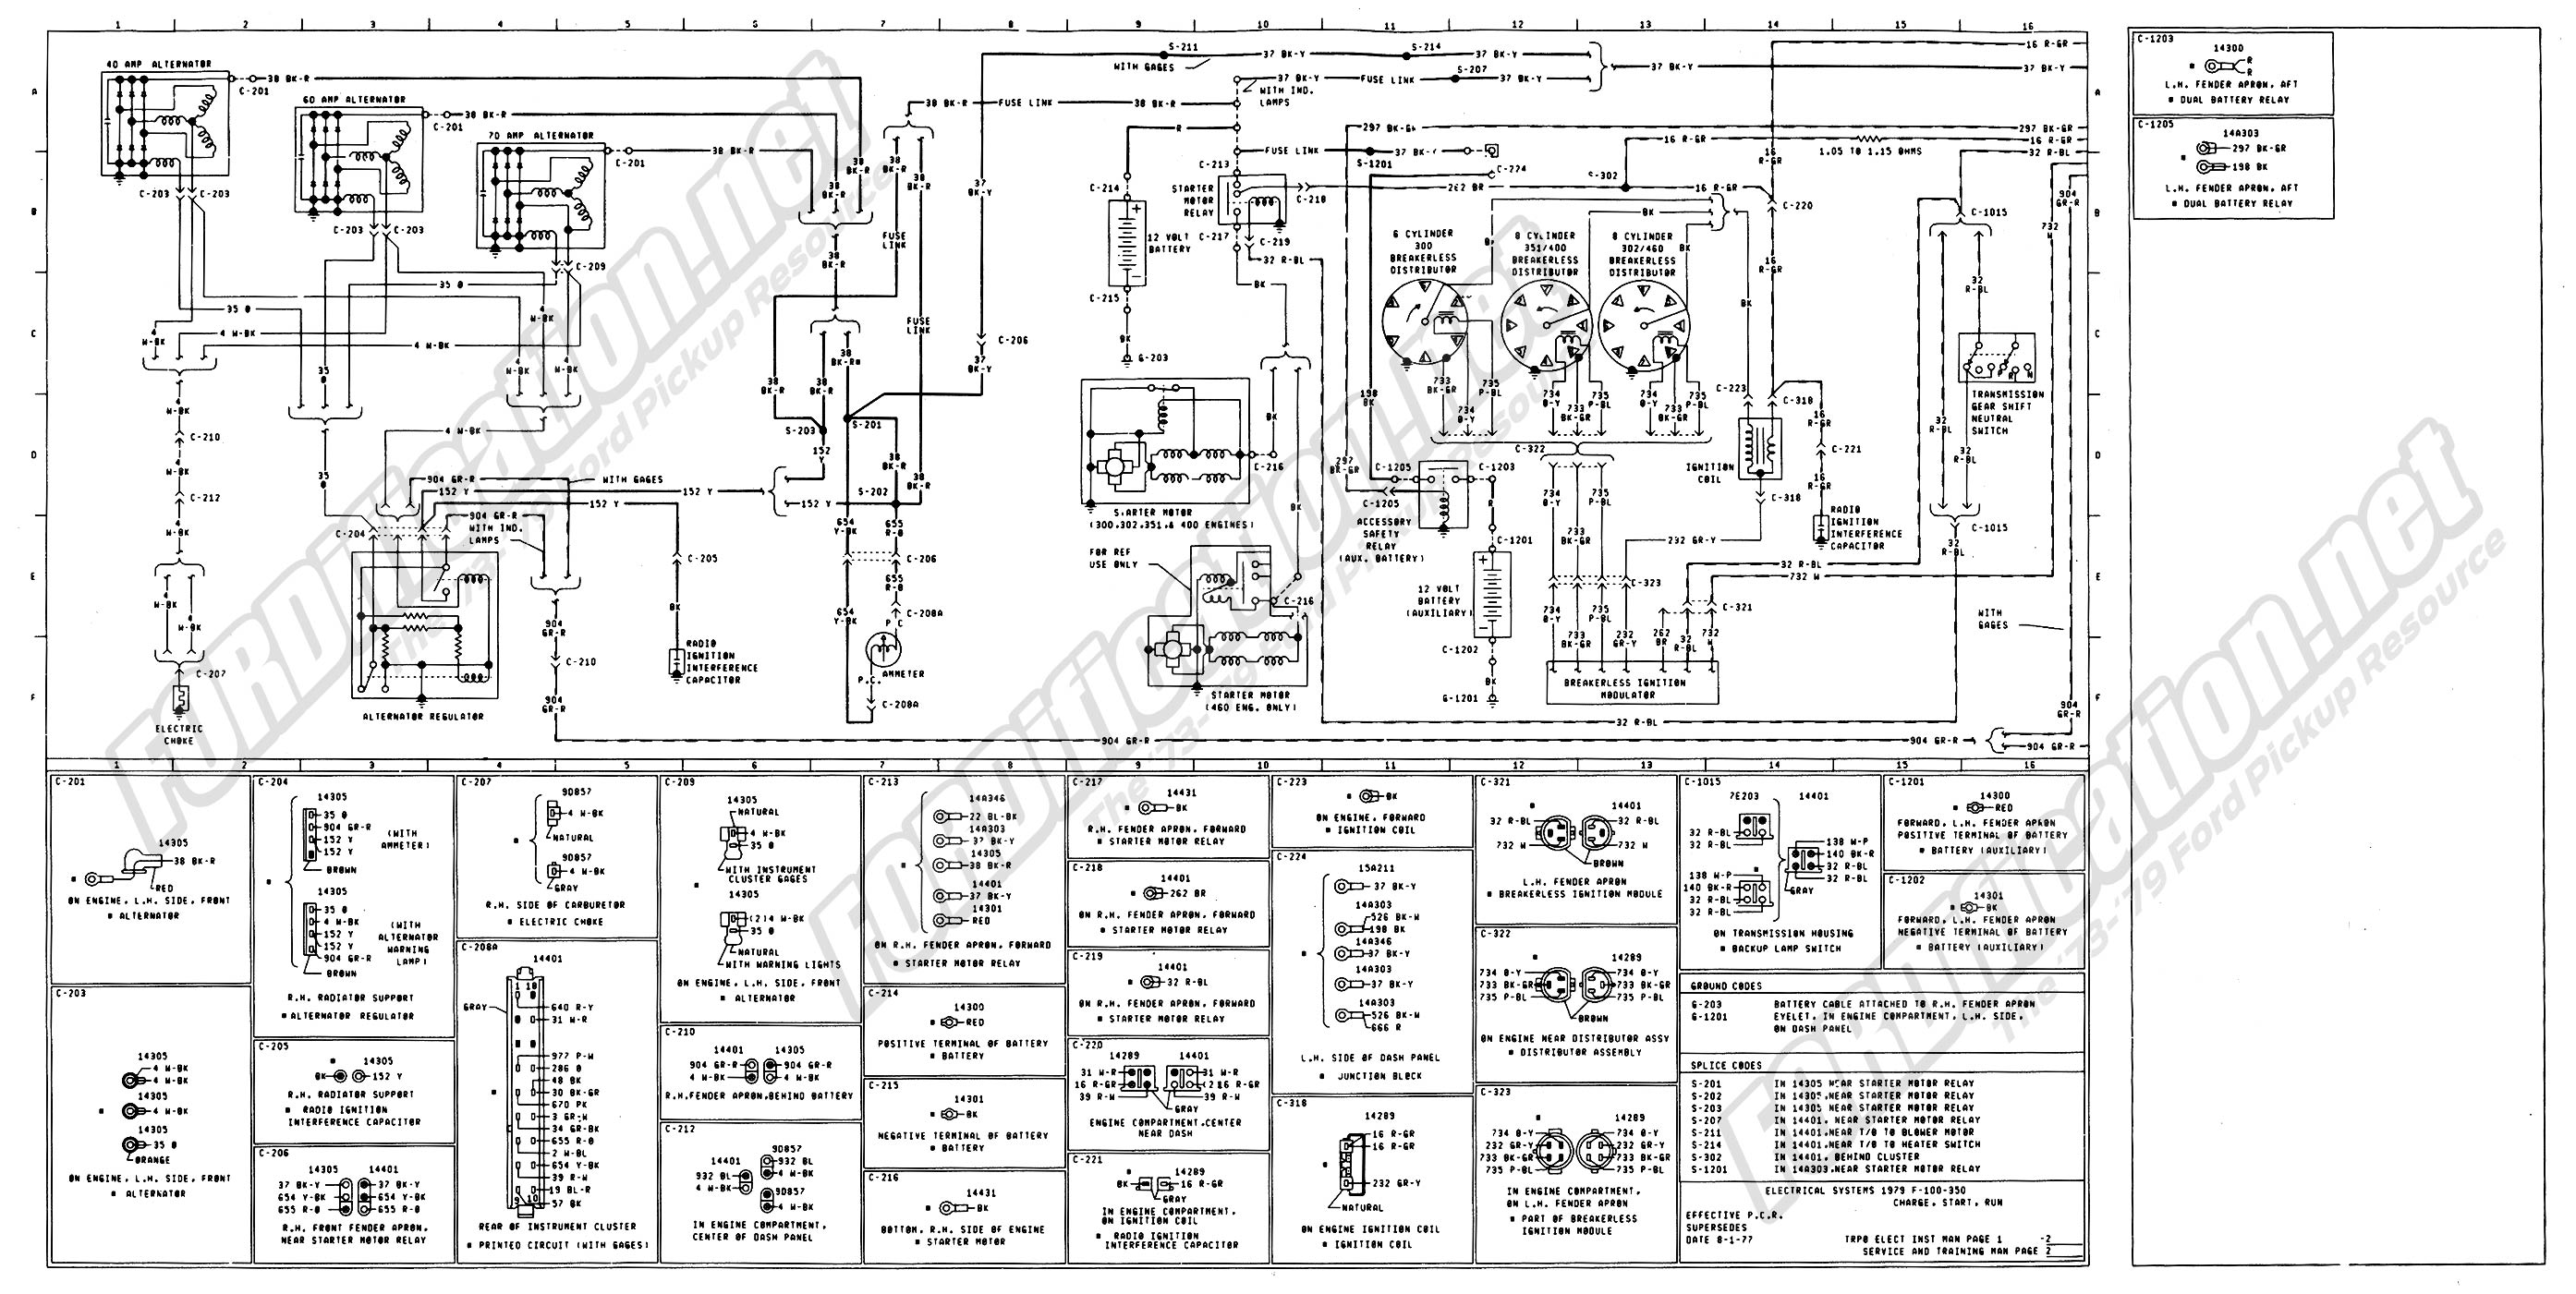 wiring_79master_2of9 1973 1979 ford truck wiring diagrams & schematics fordification net 1978 ford f150 radio wiring diagram at sewacar.co